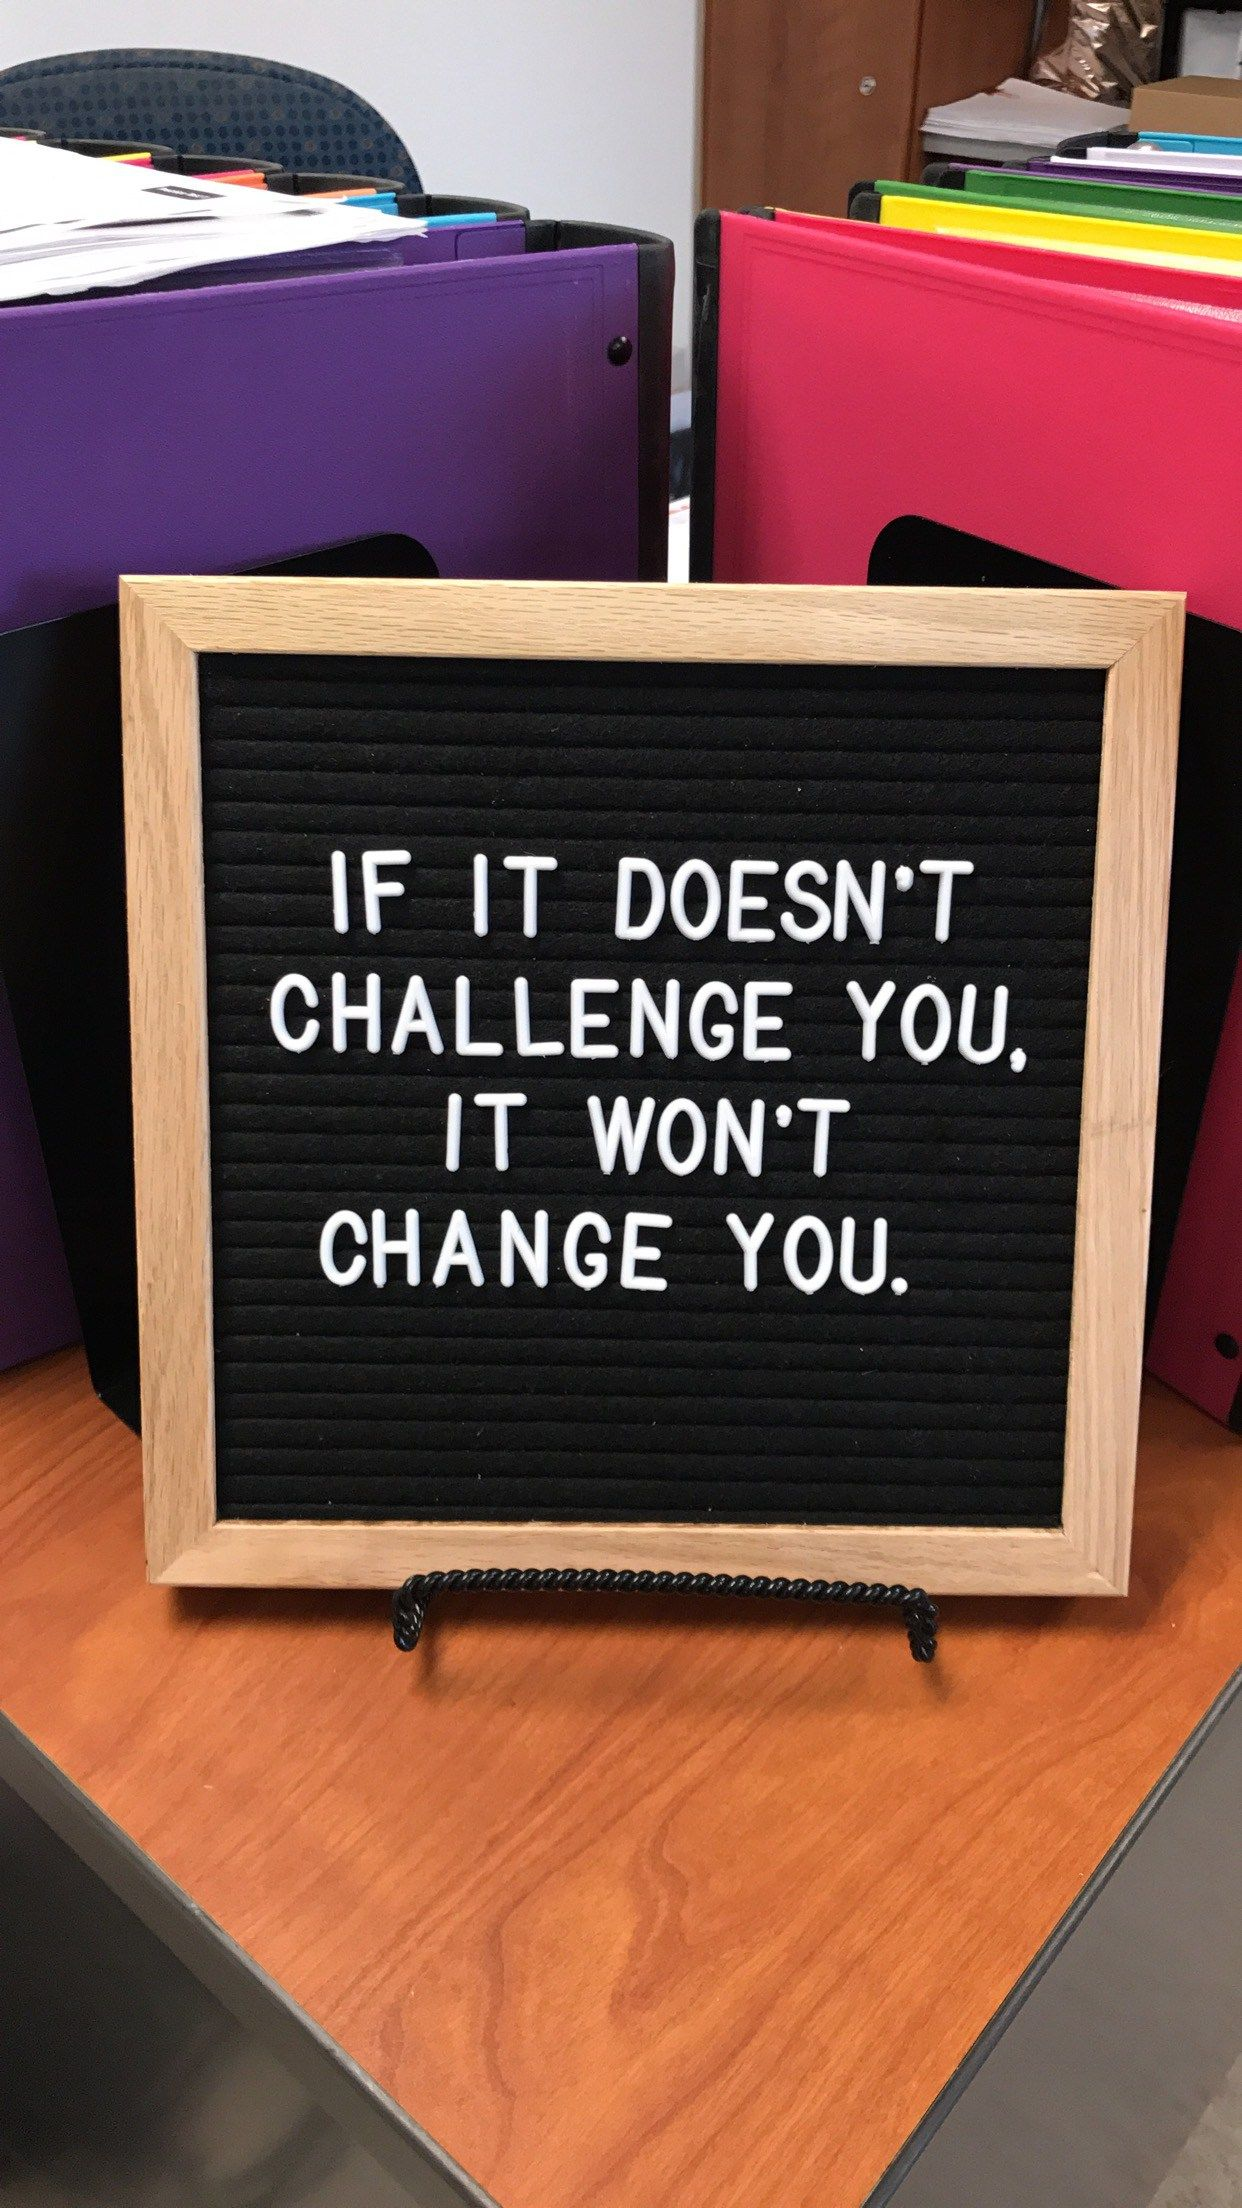 Quotes Letter Board Quote Of The Day Inspirational Quotes Message Board Quotes Lettering Inspirational Quotes